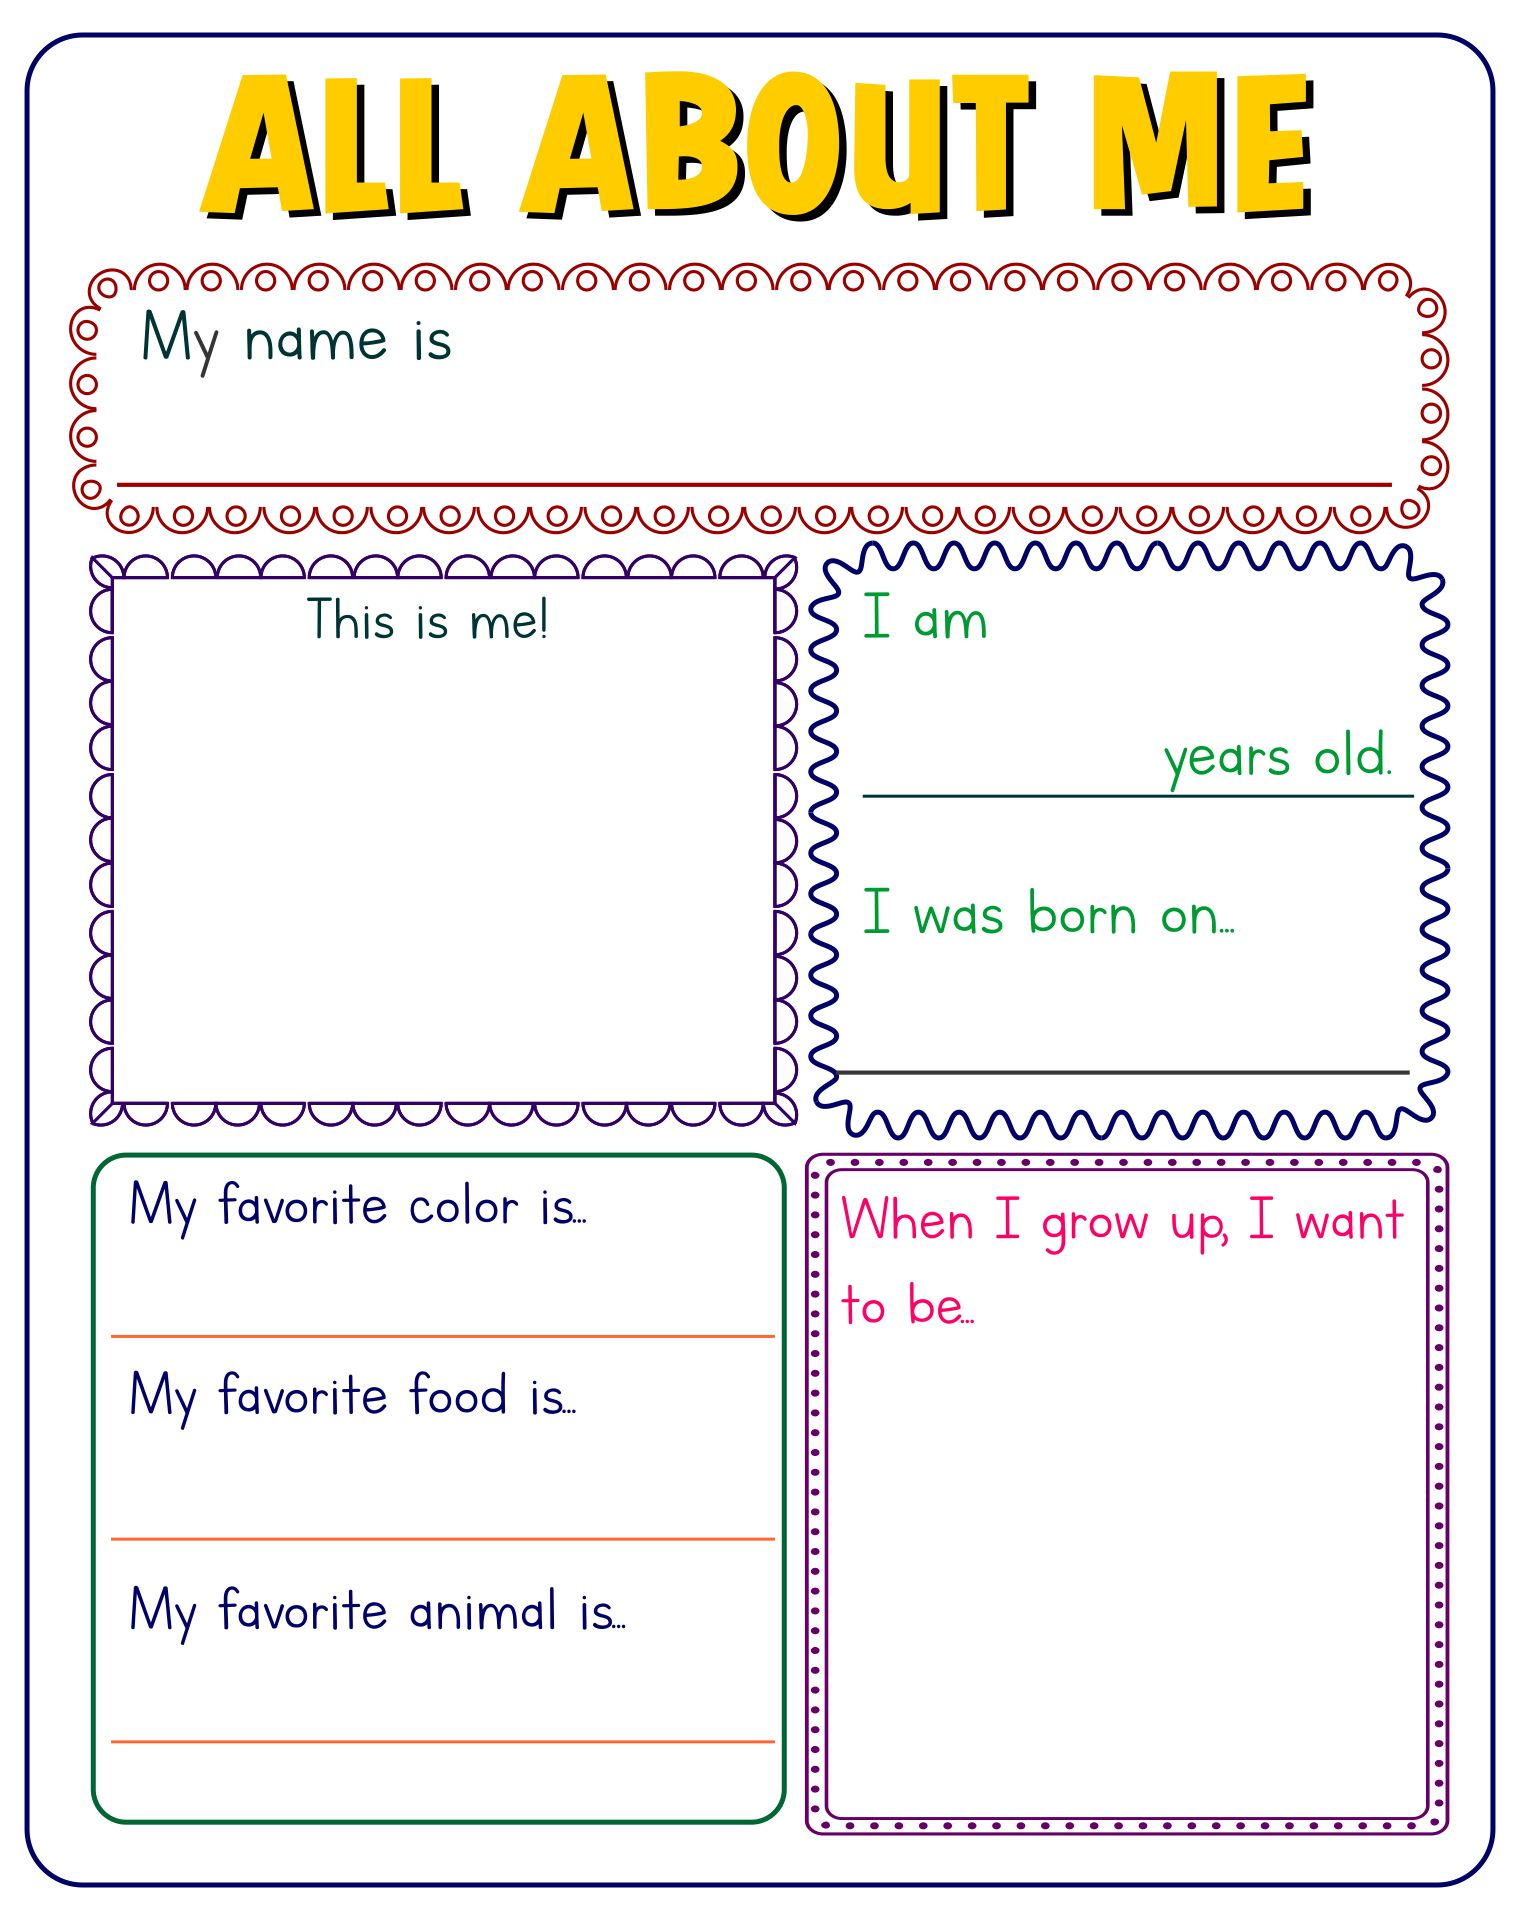 10 Best All About Me Printable Template Printablee Com